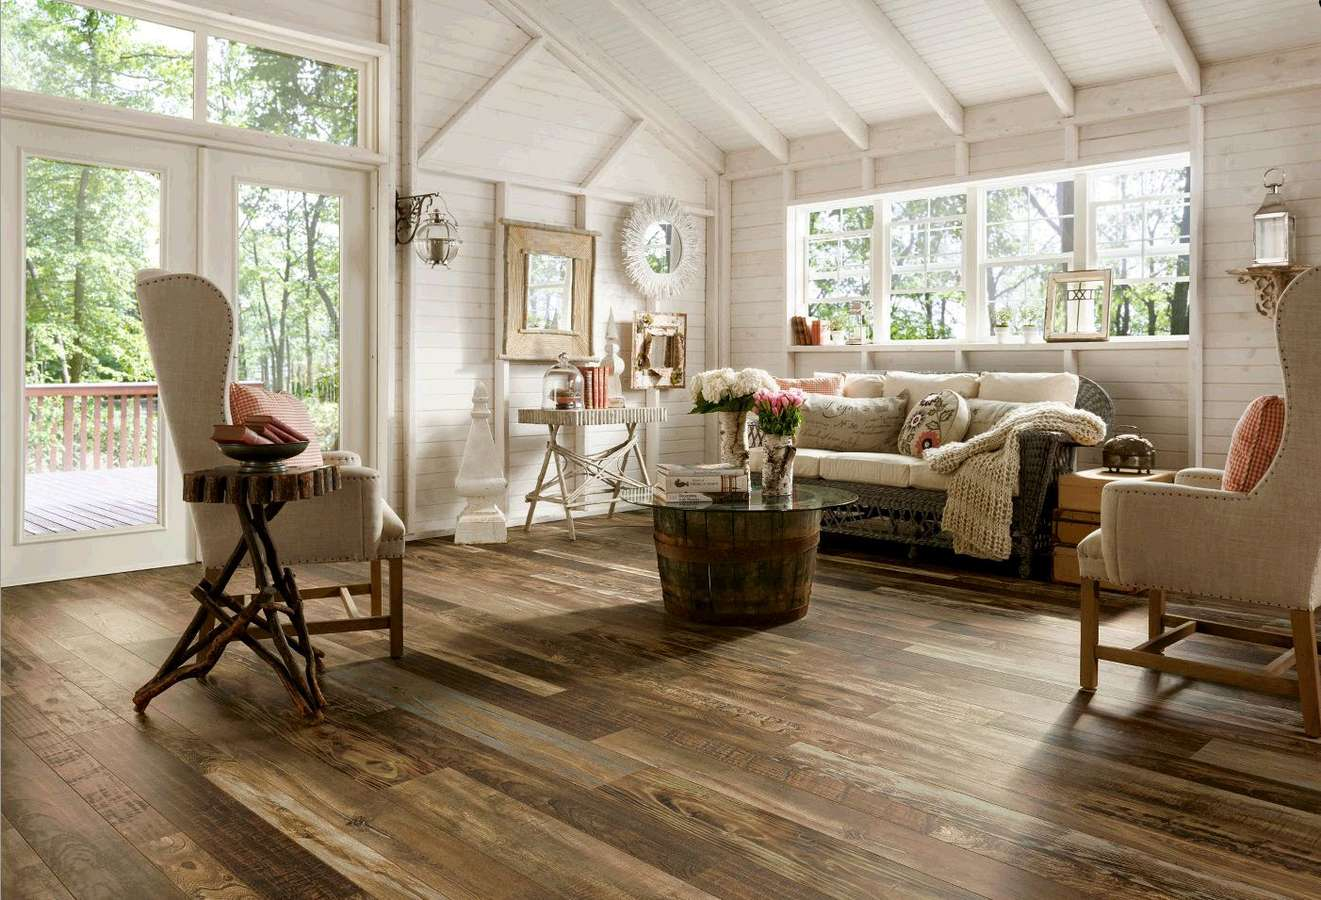 Most Durable Hardwood Floor Will Make Your House Ears With Awe Homesfeed